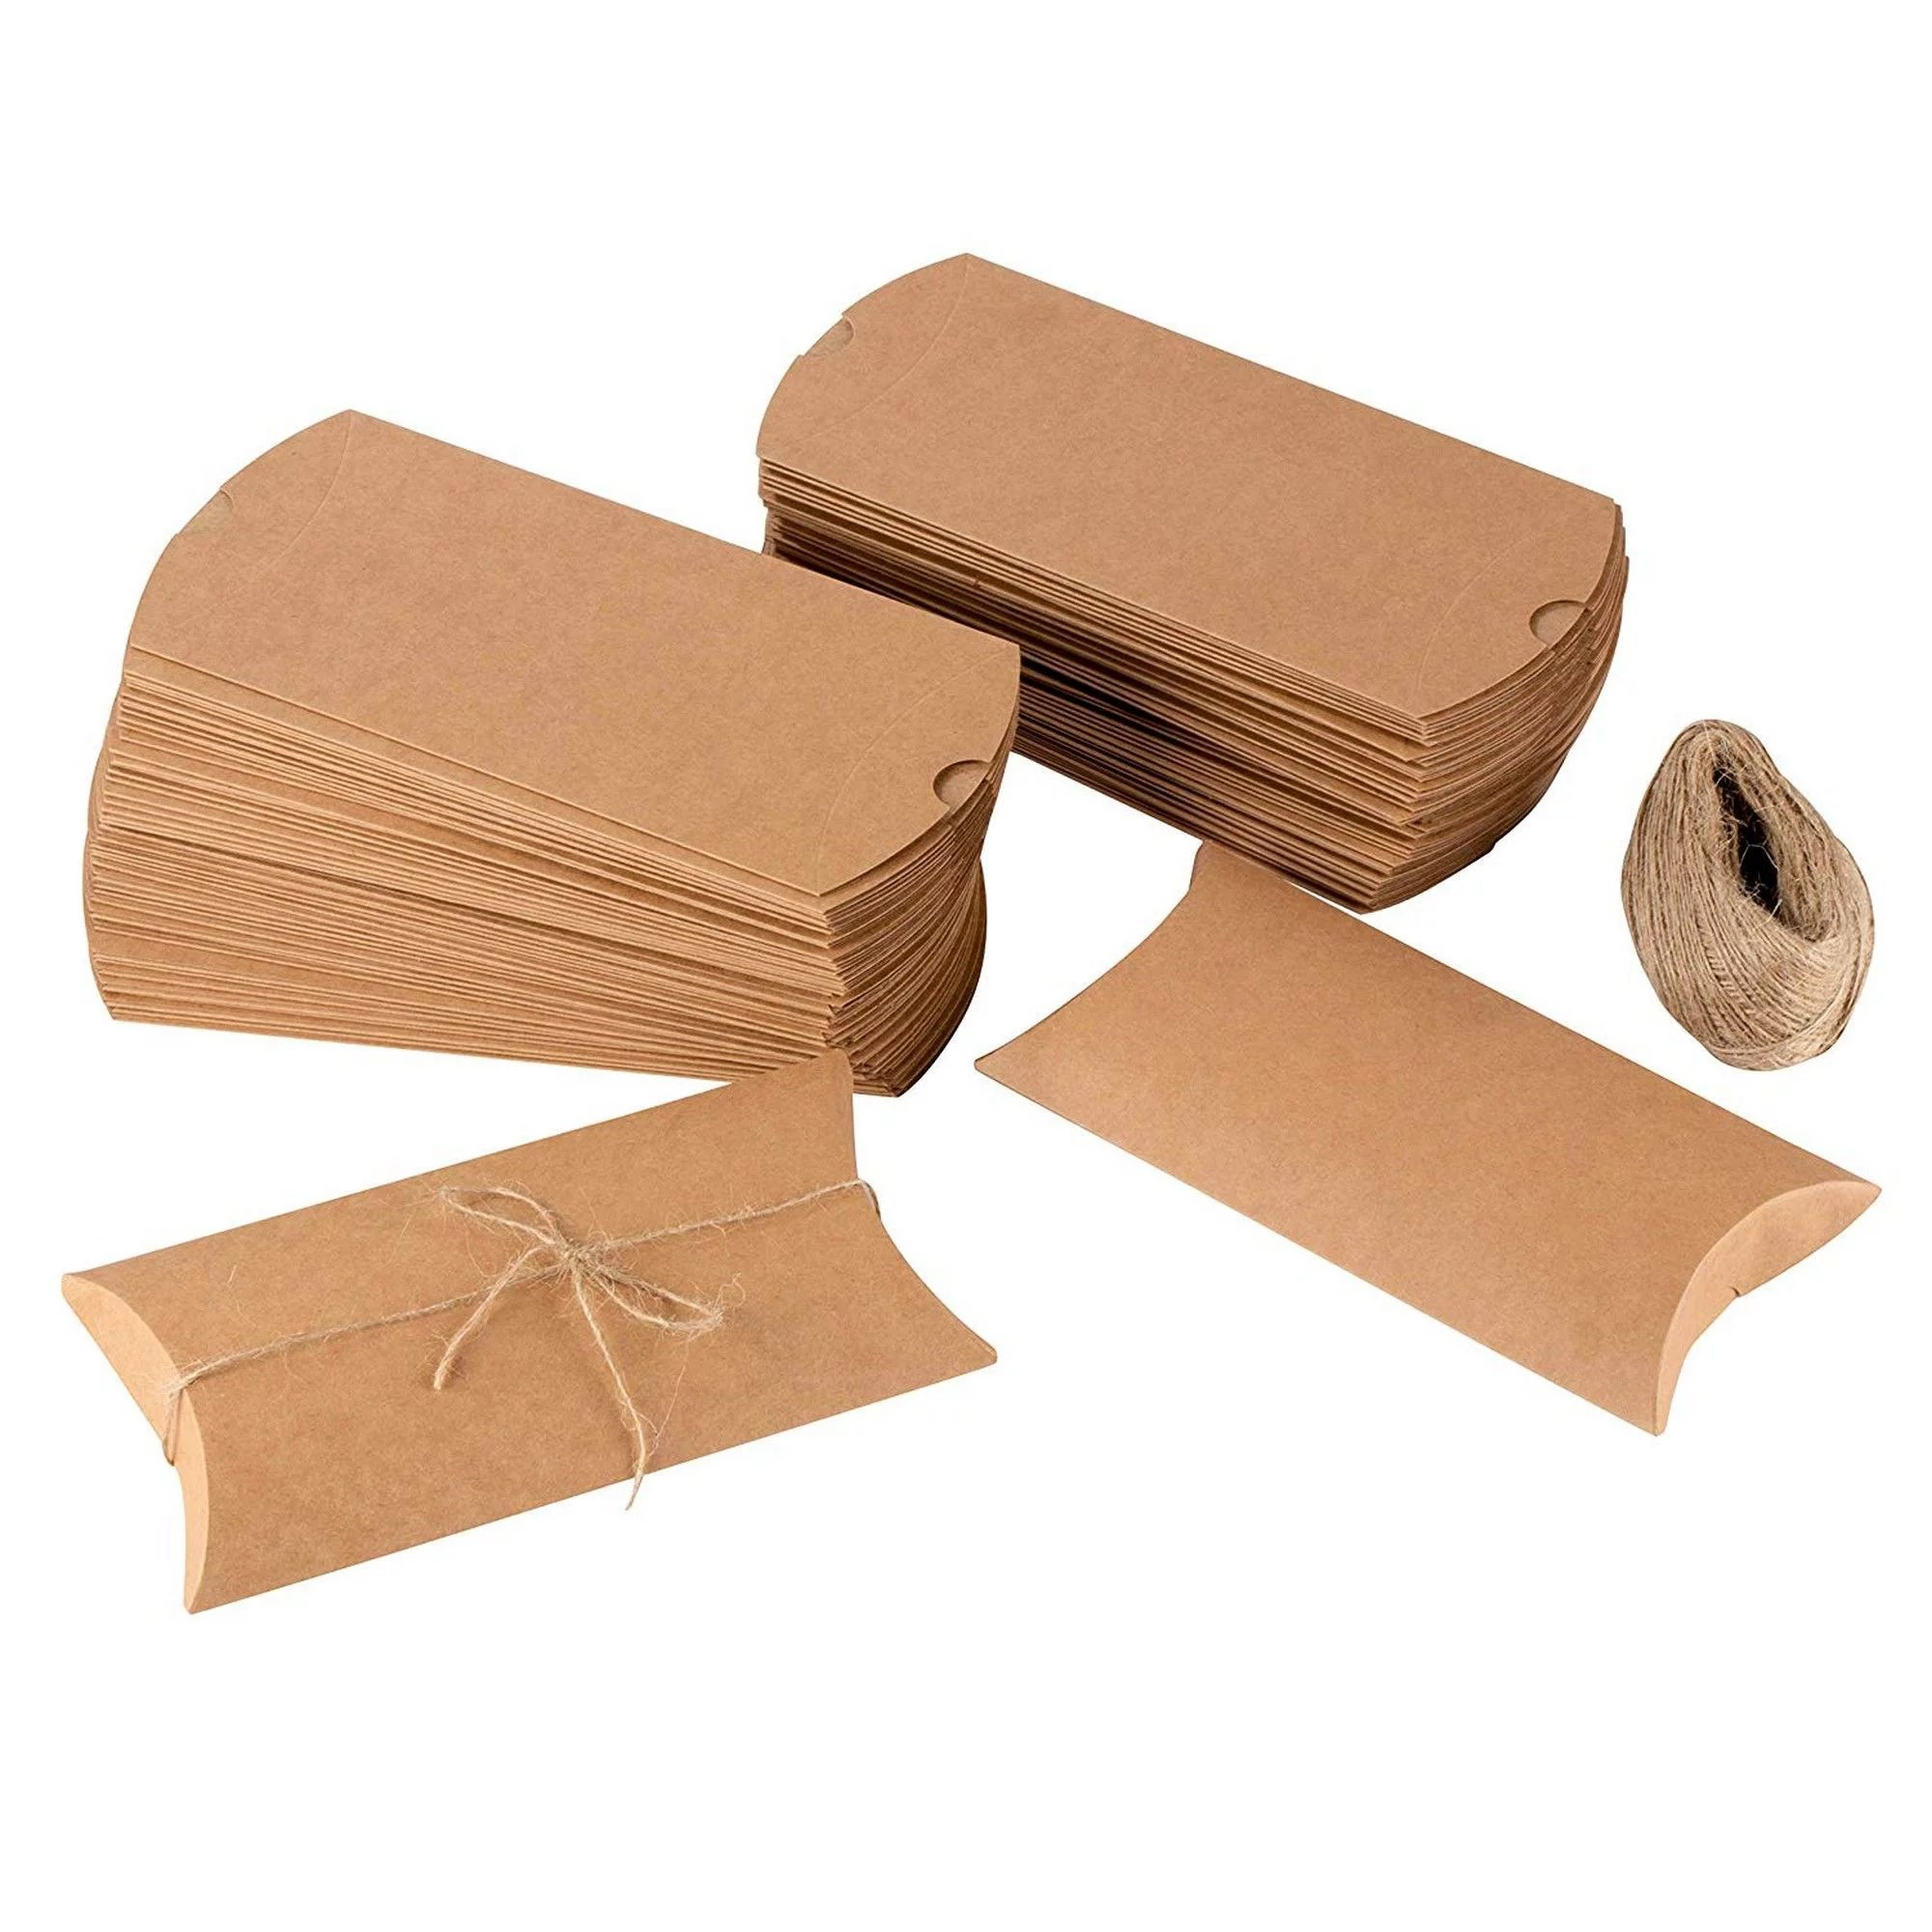 pillow boxes 100 pack kraft paper gift boxes party favor boxes for jewelry candy small note card jute twine included brown 7 5 x 3 7 x 1 2